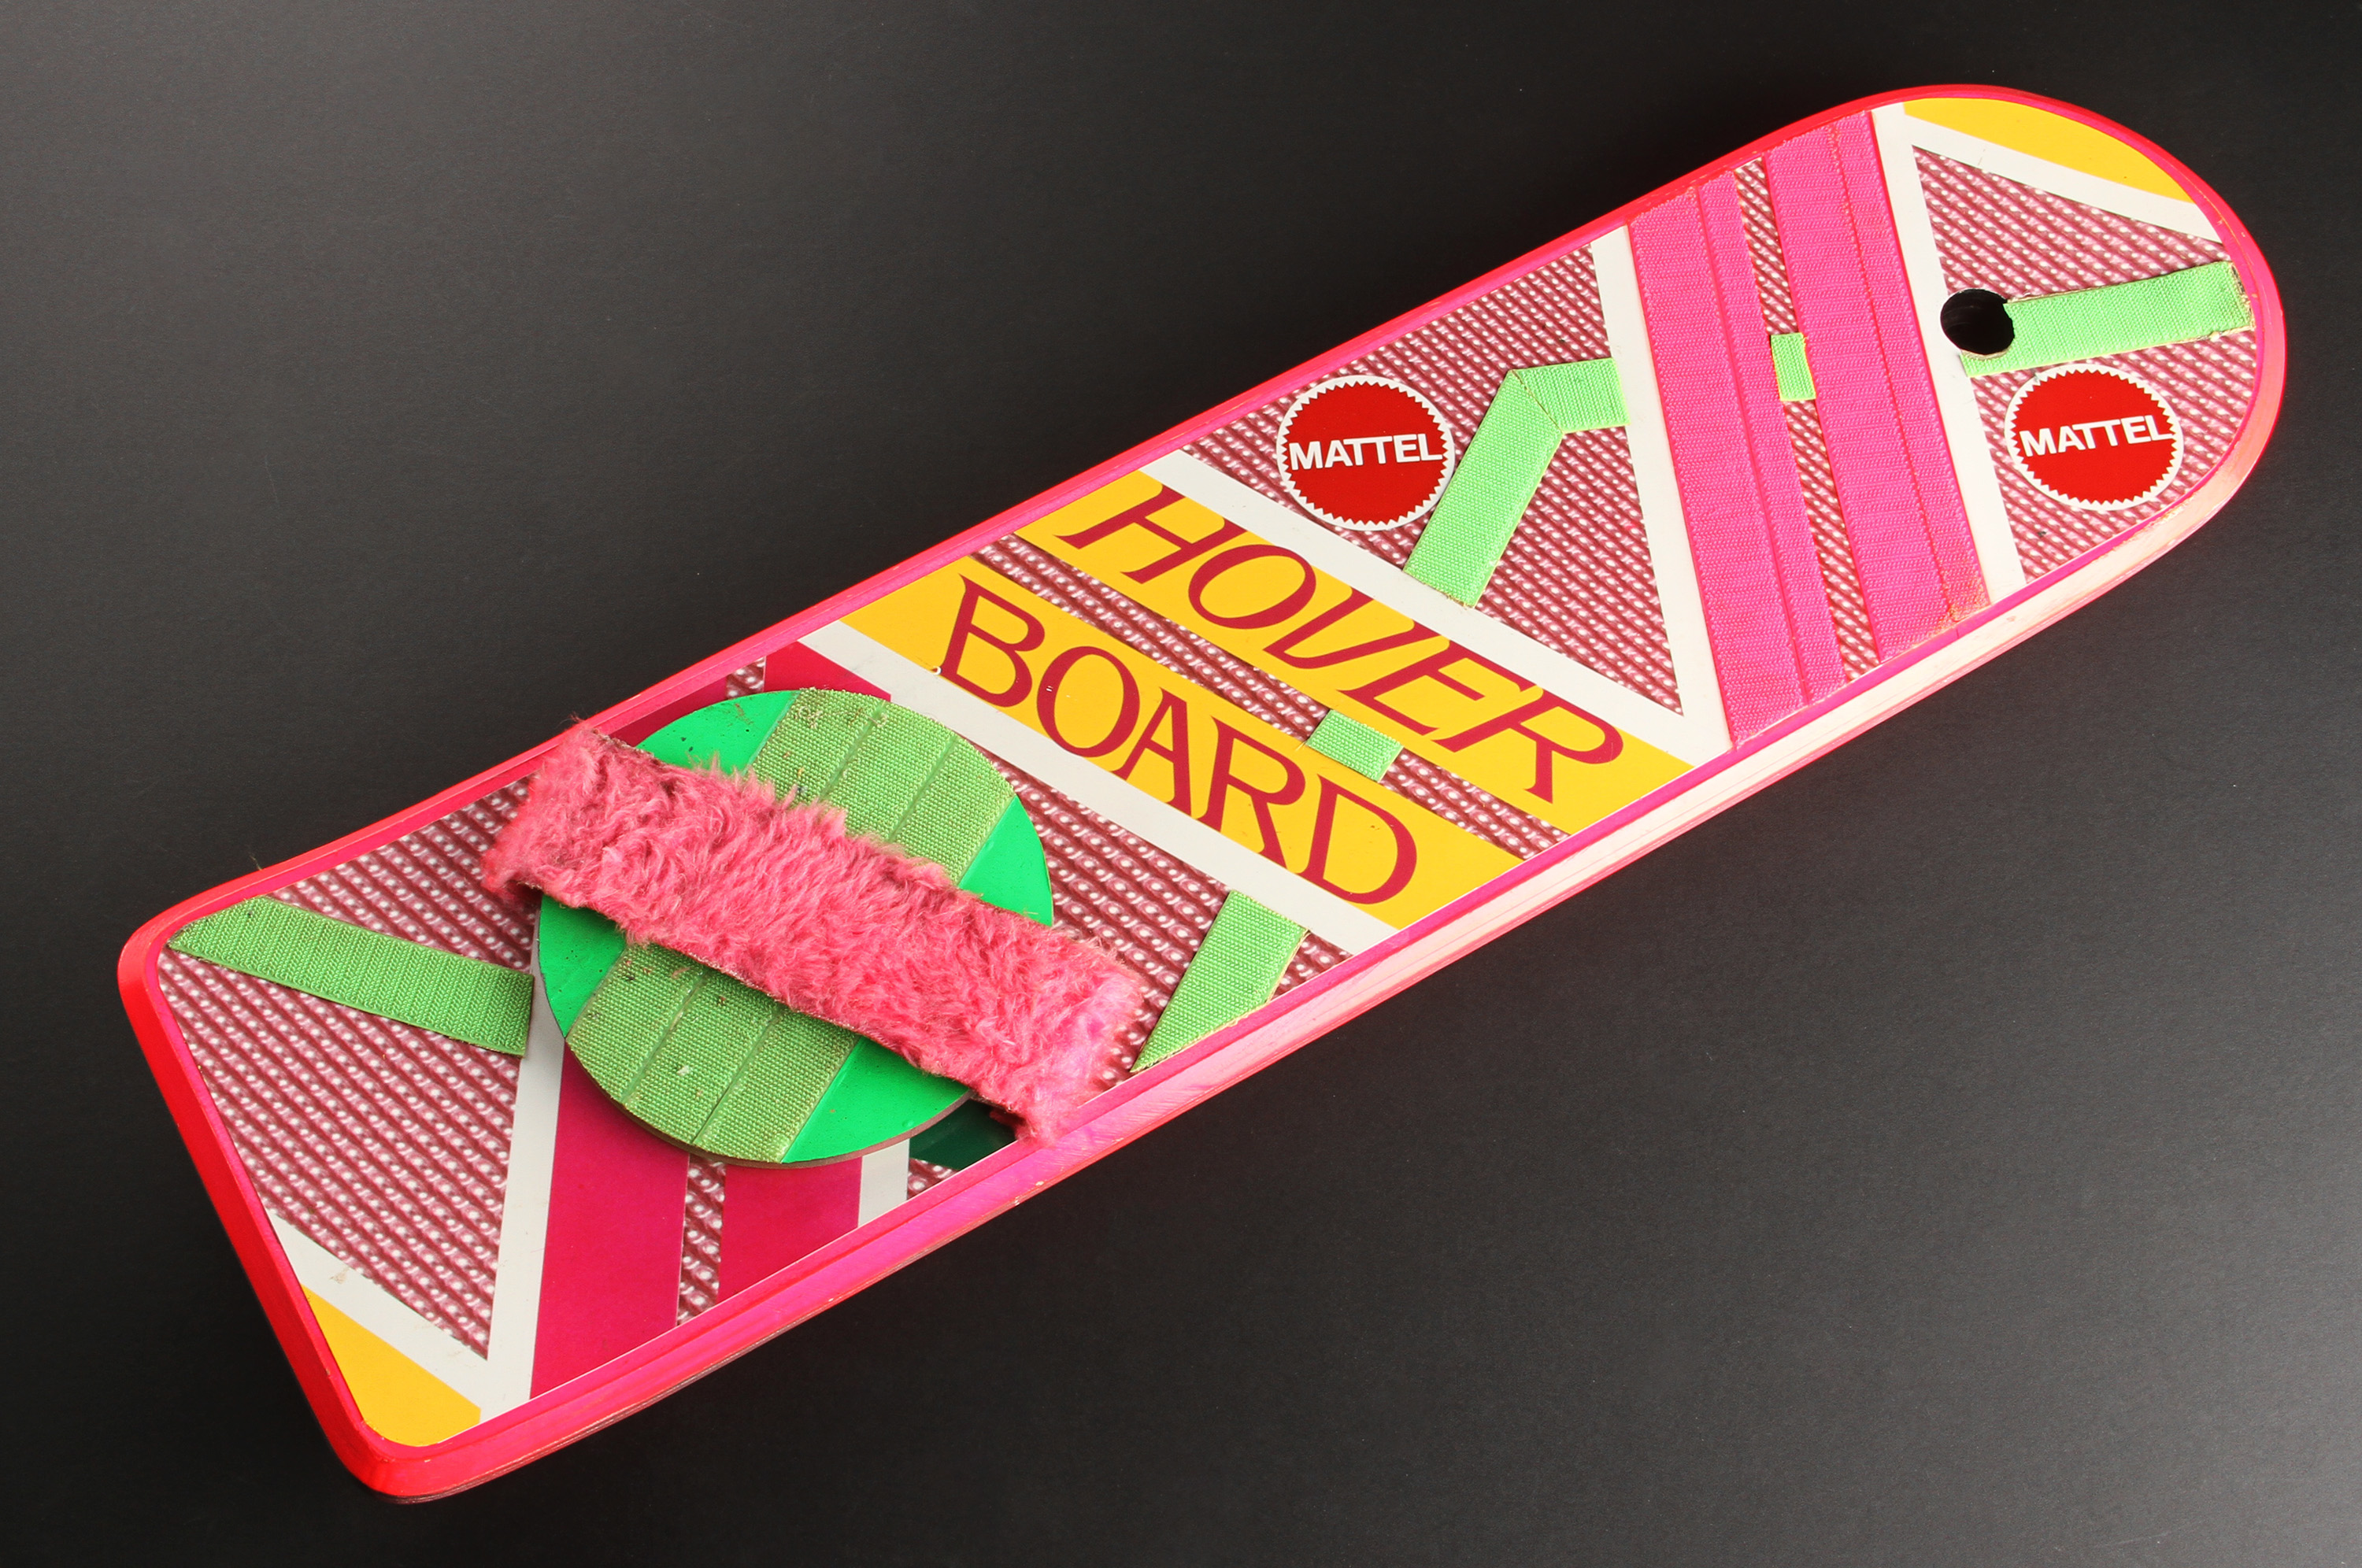 Hoverboard Plans The Prop Store Collection Presentsmarty Mcflys Hoverboard Prop